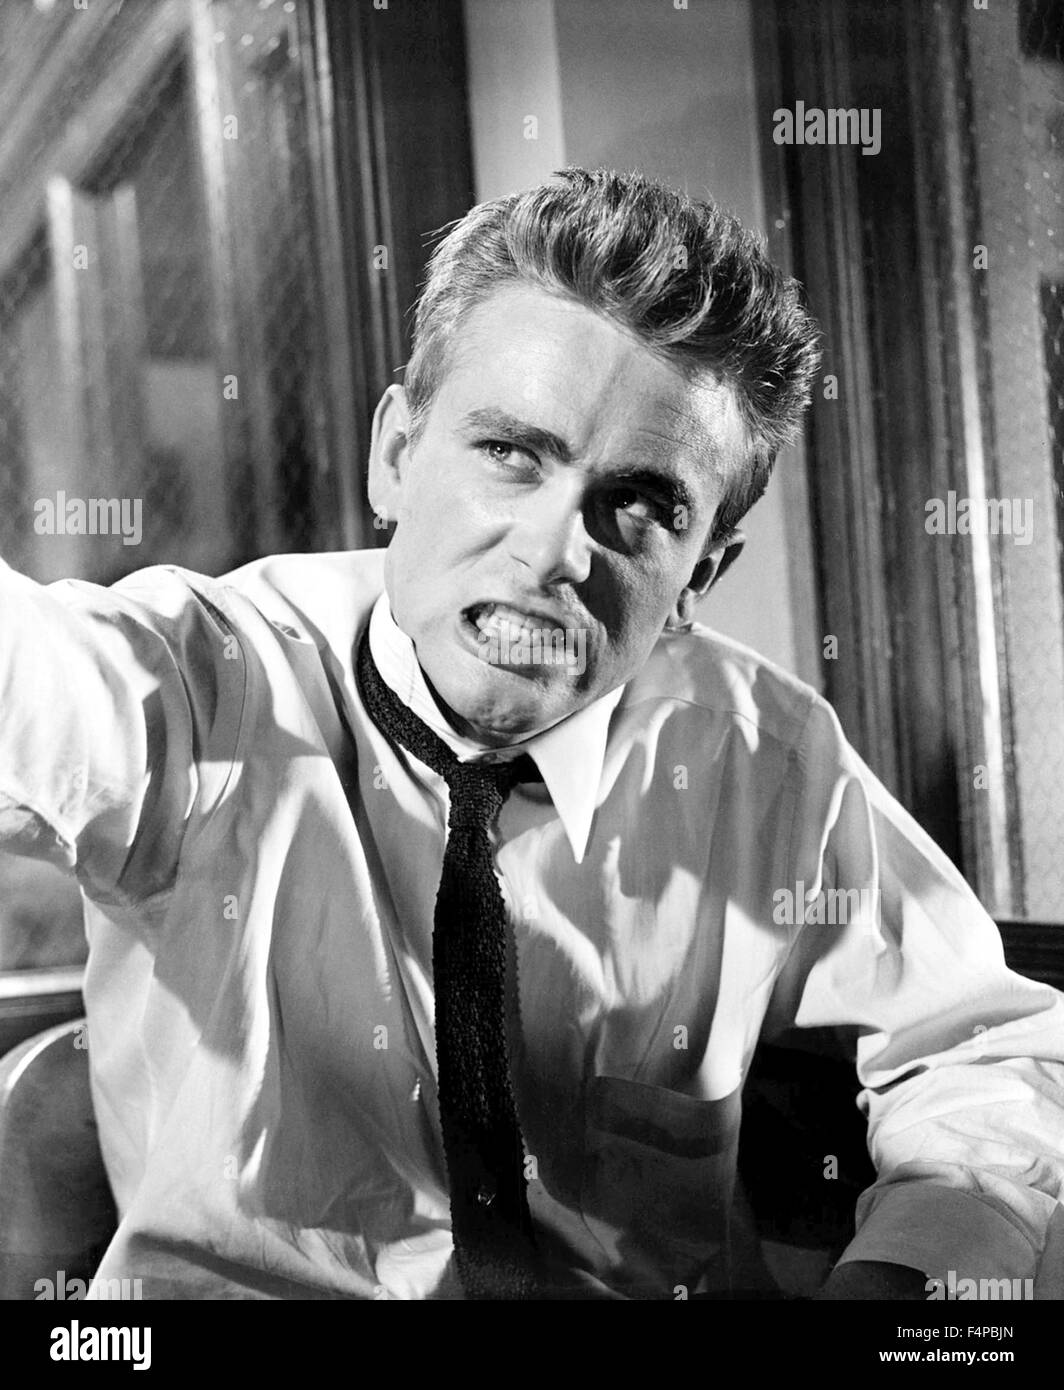 James Dean / Rebel Without A Cause 1955 directed by Nicolas Ray - Stock Image